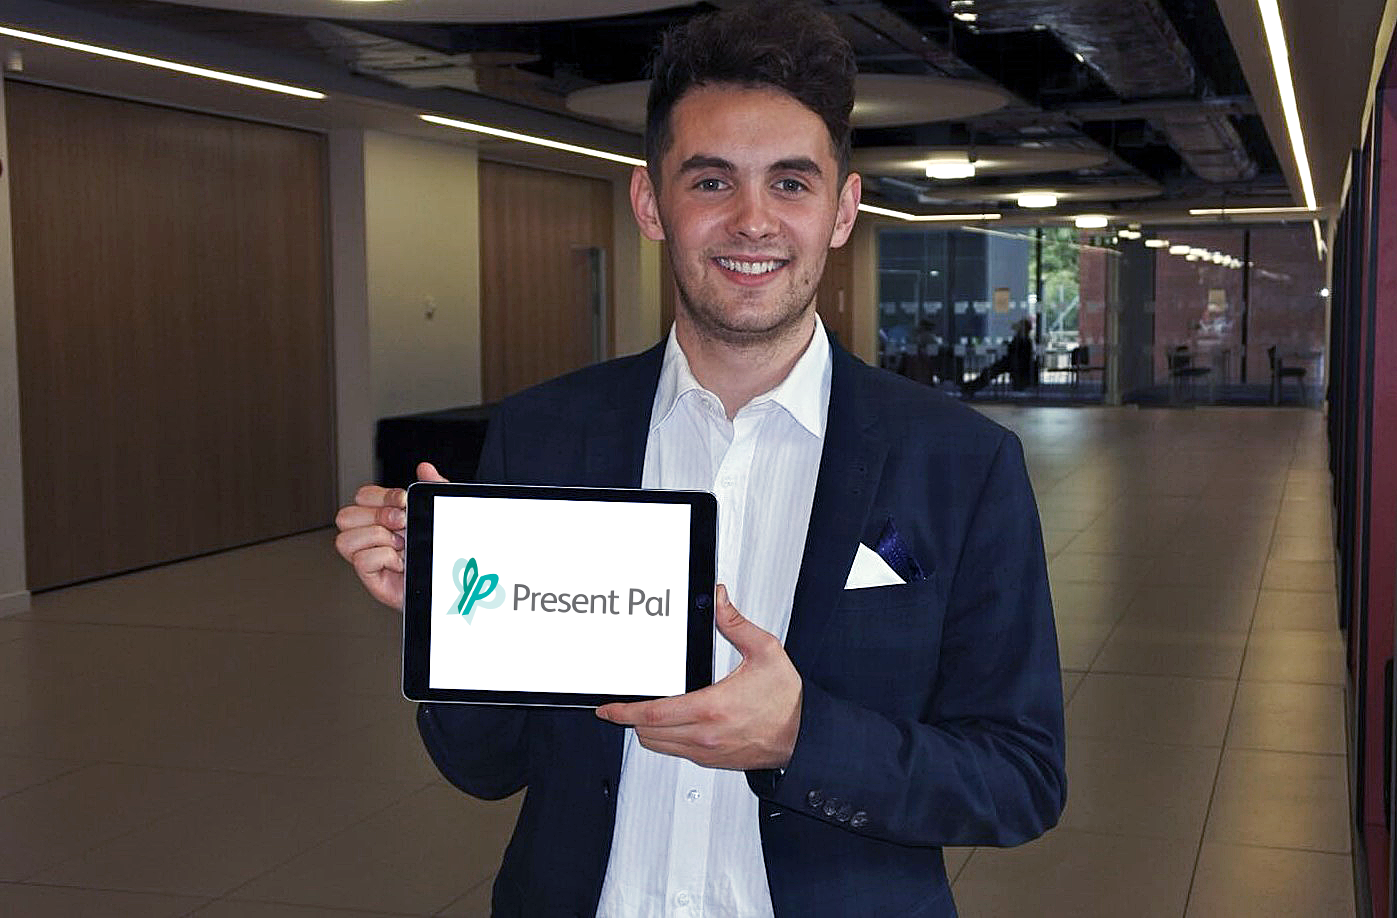 IMAGE: CEO Chris holding tablet with Present Pal